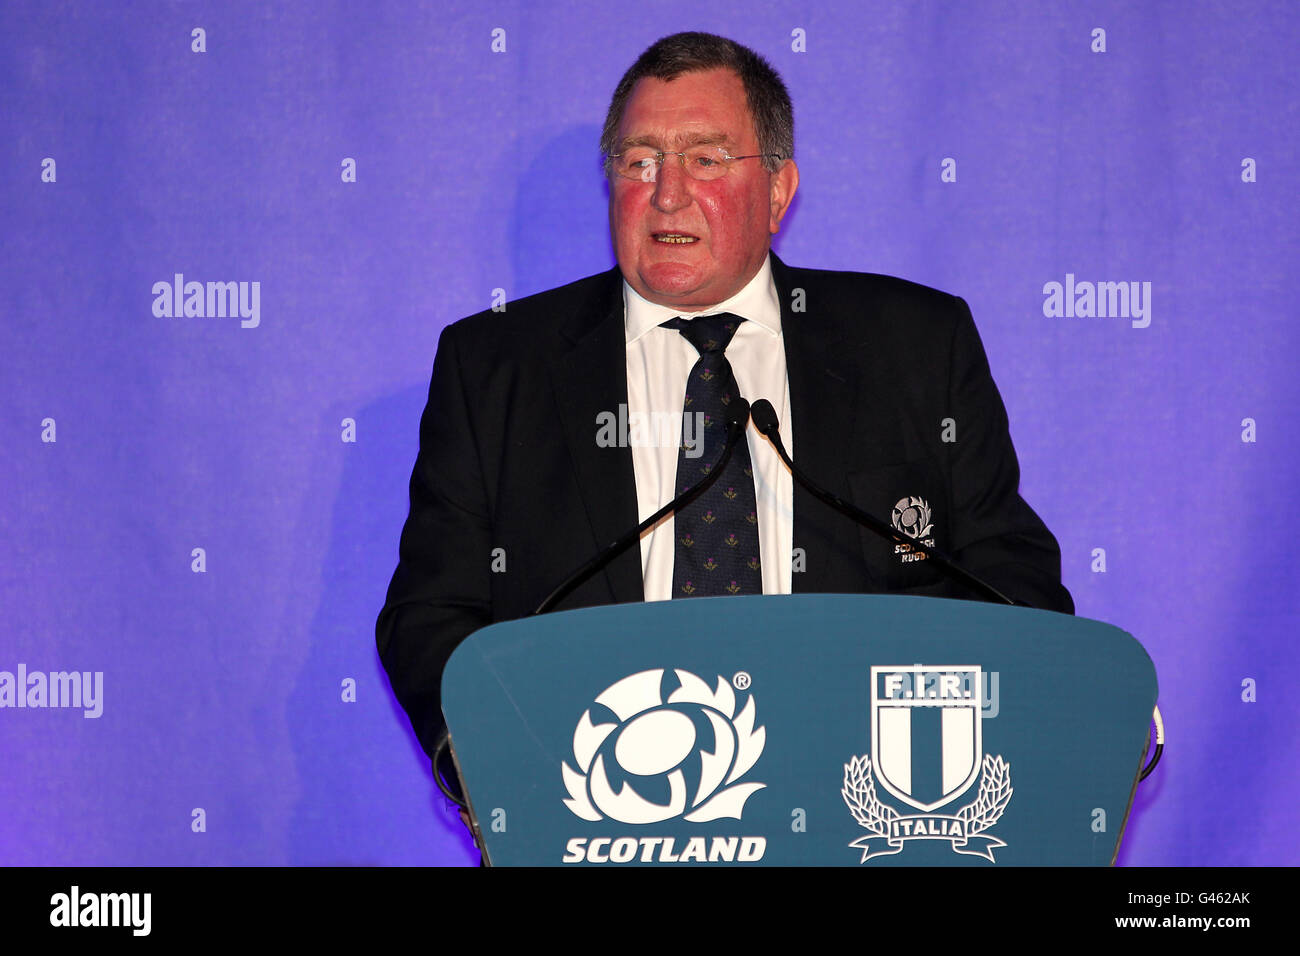 Rugby Union - RBS 6 Nations Championship 2011 - Scotland v Italy - Murrayfield - Stock Image